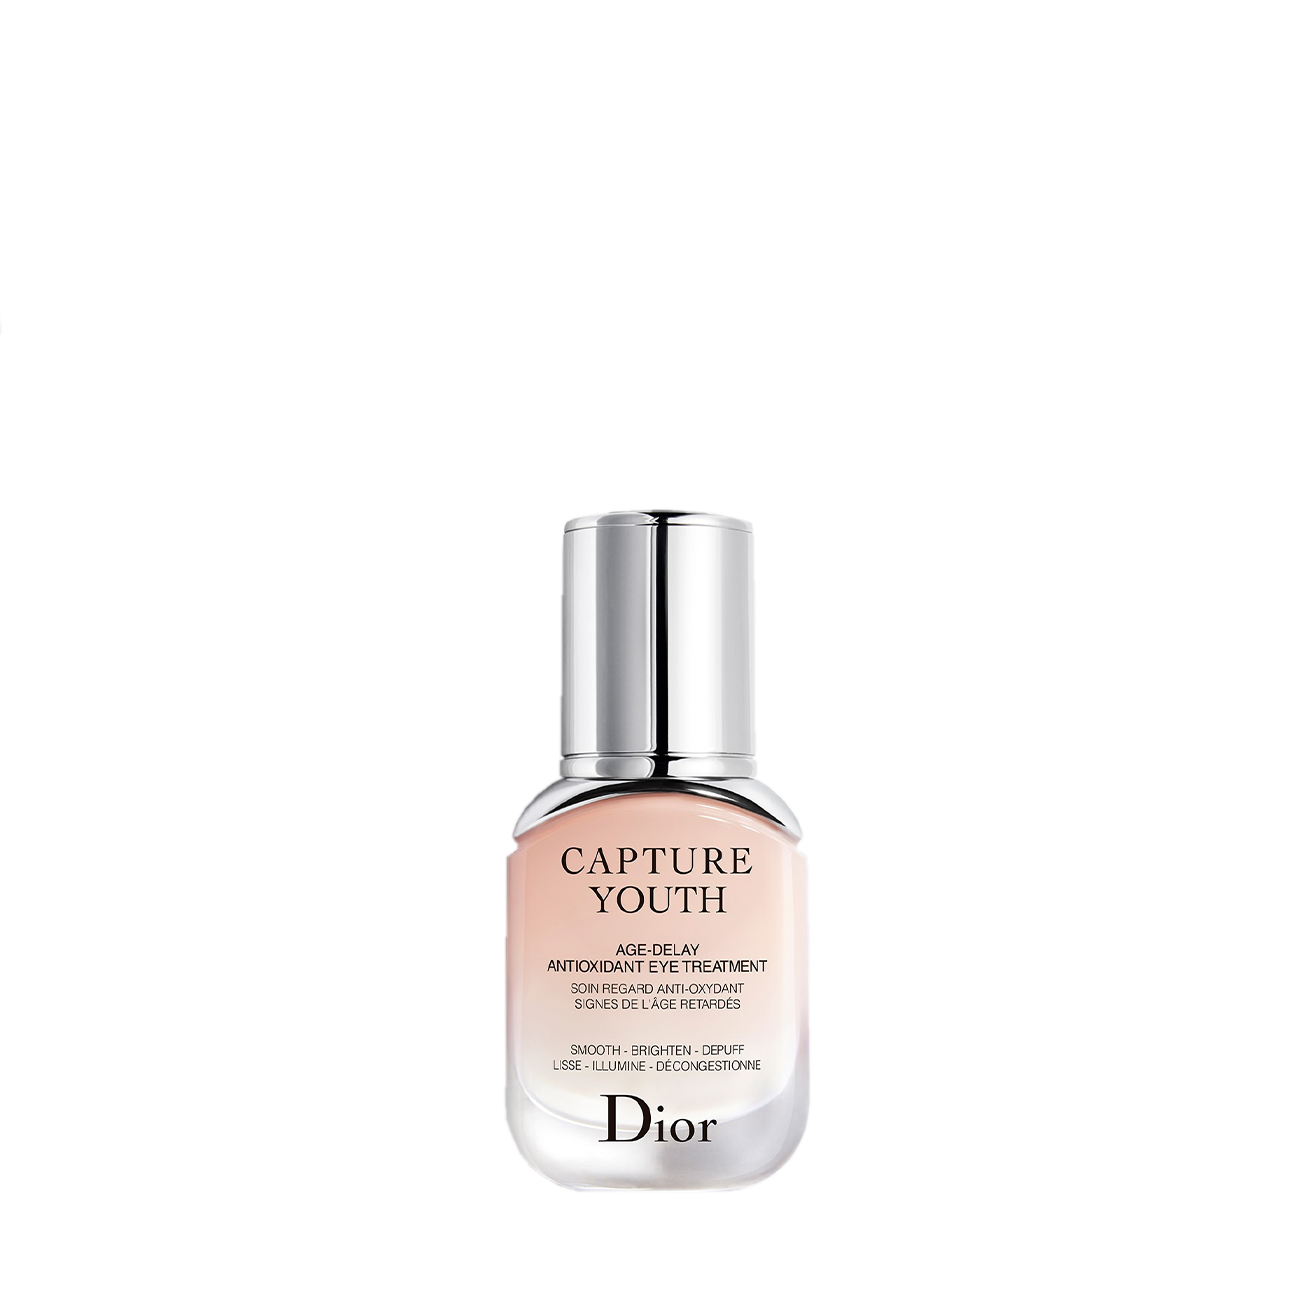 Age - Delay Advanced Eye Treatment 15ml Dior imagine 2021 bestvalue.eu